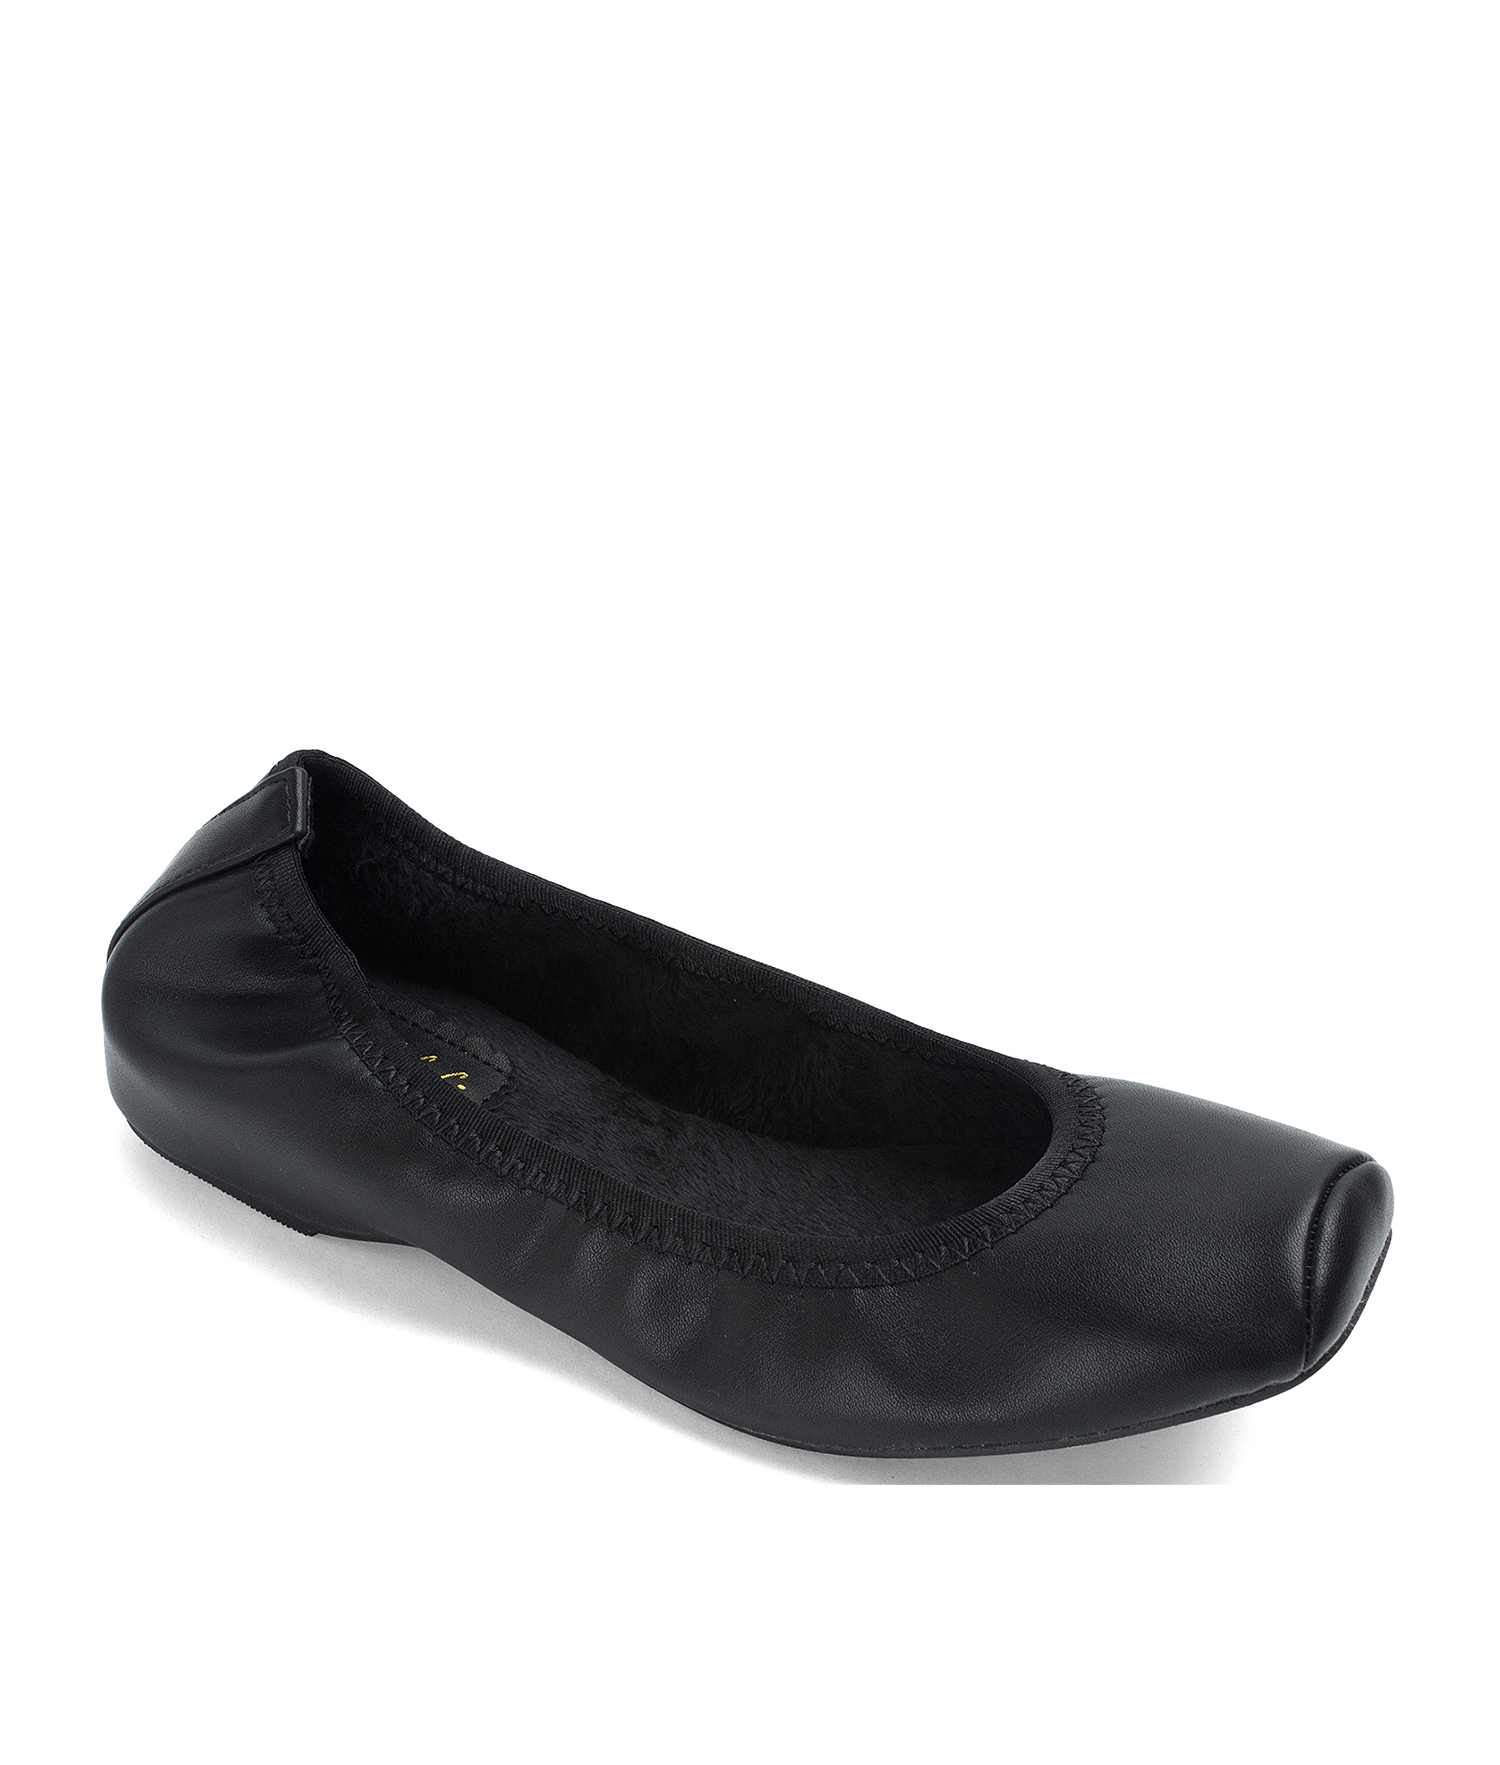 Snub-Toe Elastic Hidden Wedge Ballet Flats Black Fur Lining